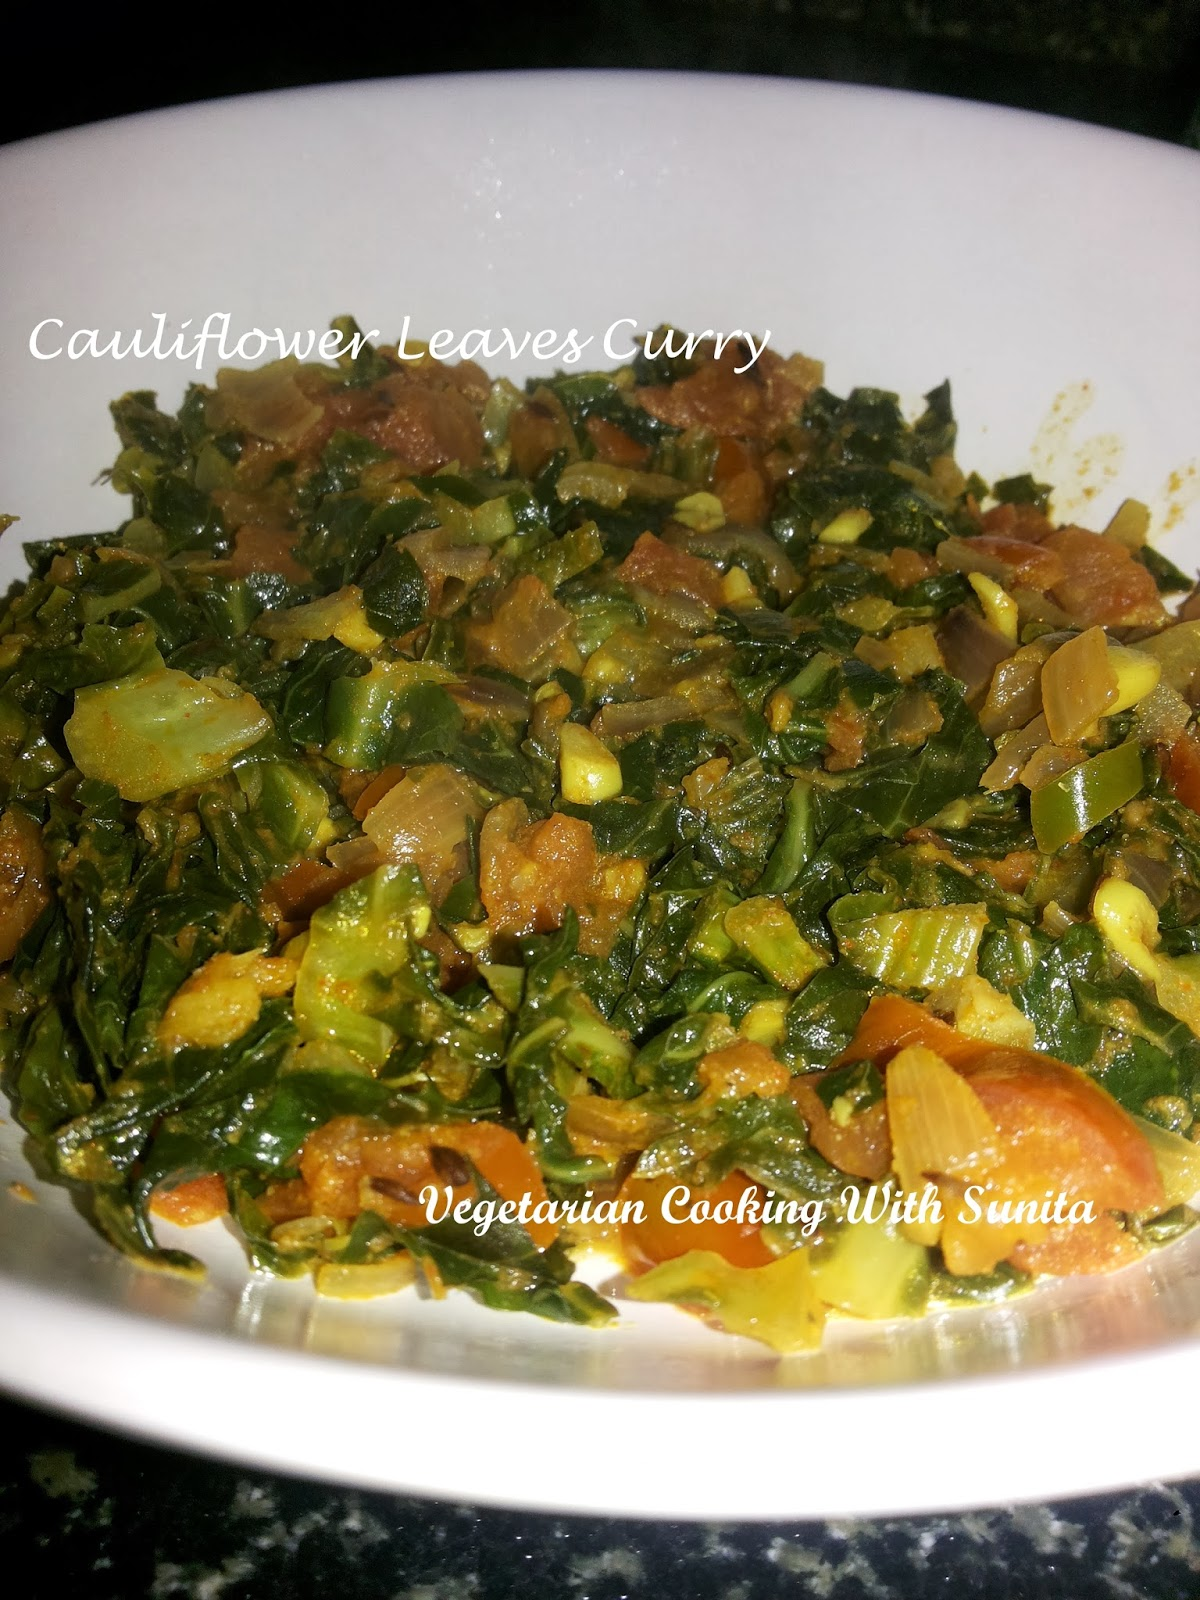 Indian food recipes indian recipes desi food desi recipes 1 cup chopped cauliflower leaves 1 onion chopped 1 tomato chopped 1 green chilli chopped 2 tsp ginger garlic finely chopped 14 tsp turmeric powder forumfinder Choice Image